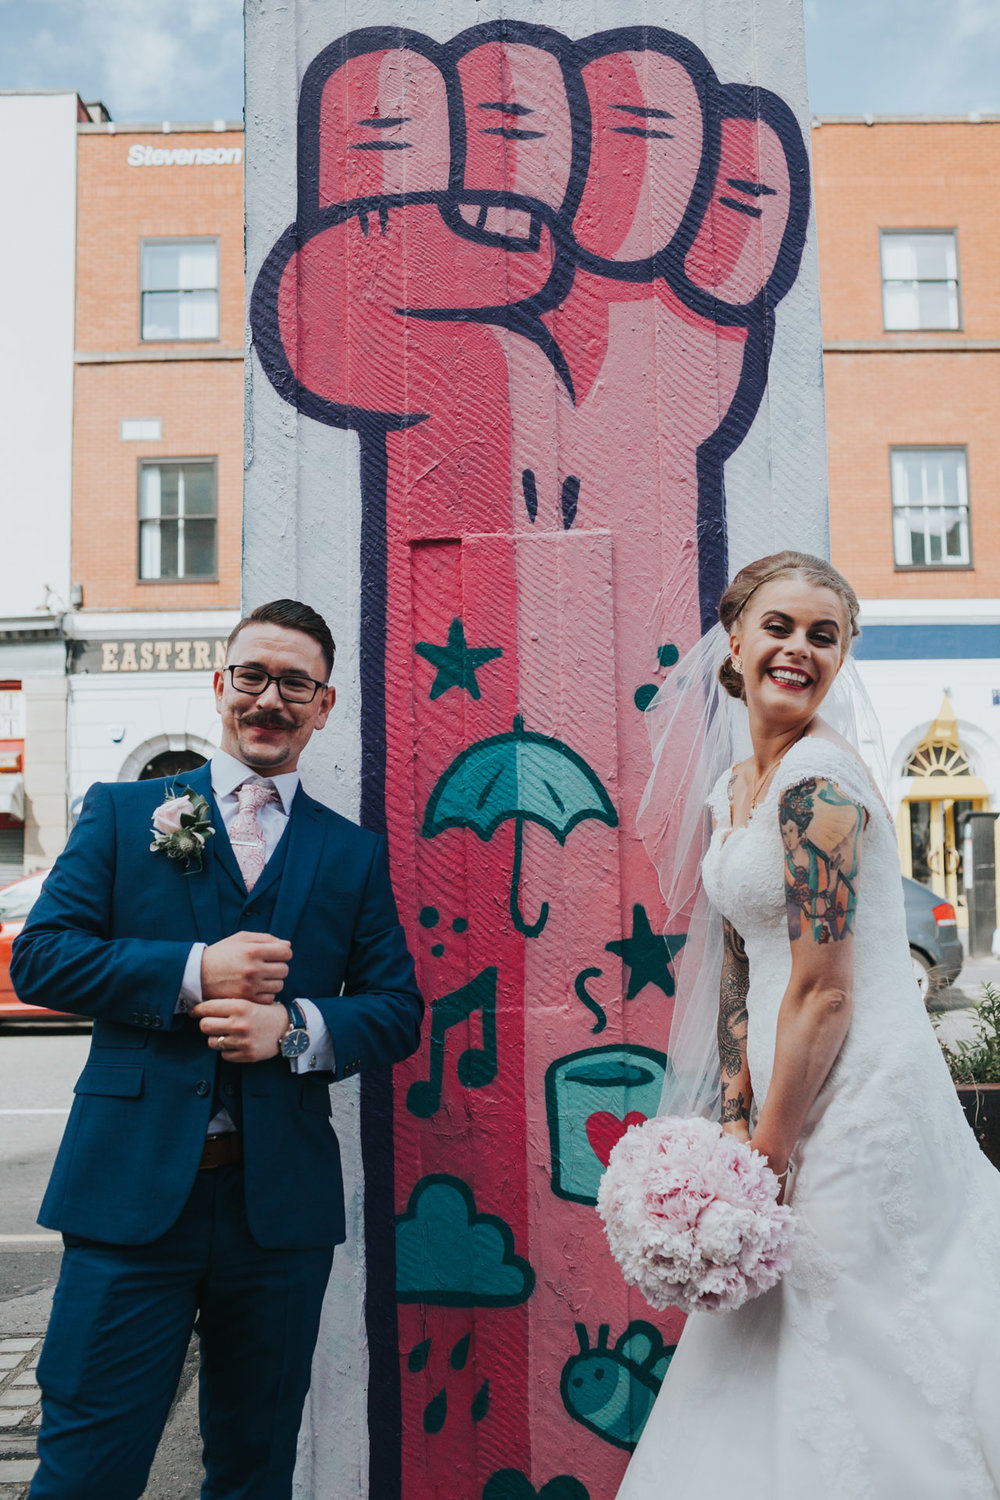 Bride and Groom smile in front of pink power to the people street art in Stevenson Square, Manchester.